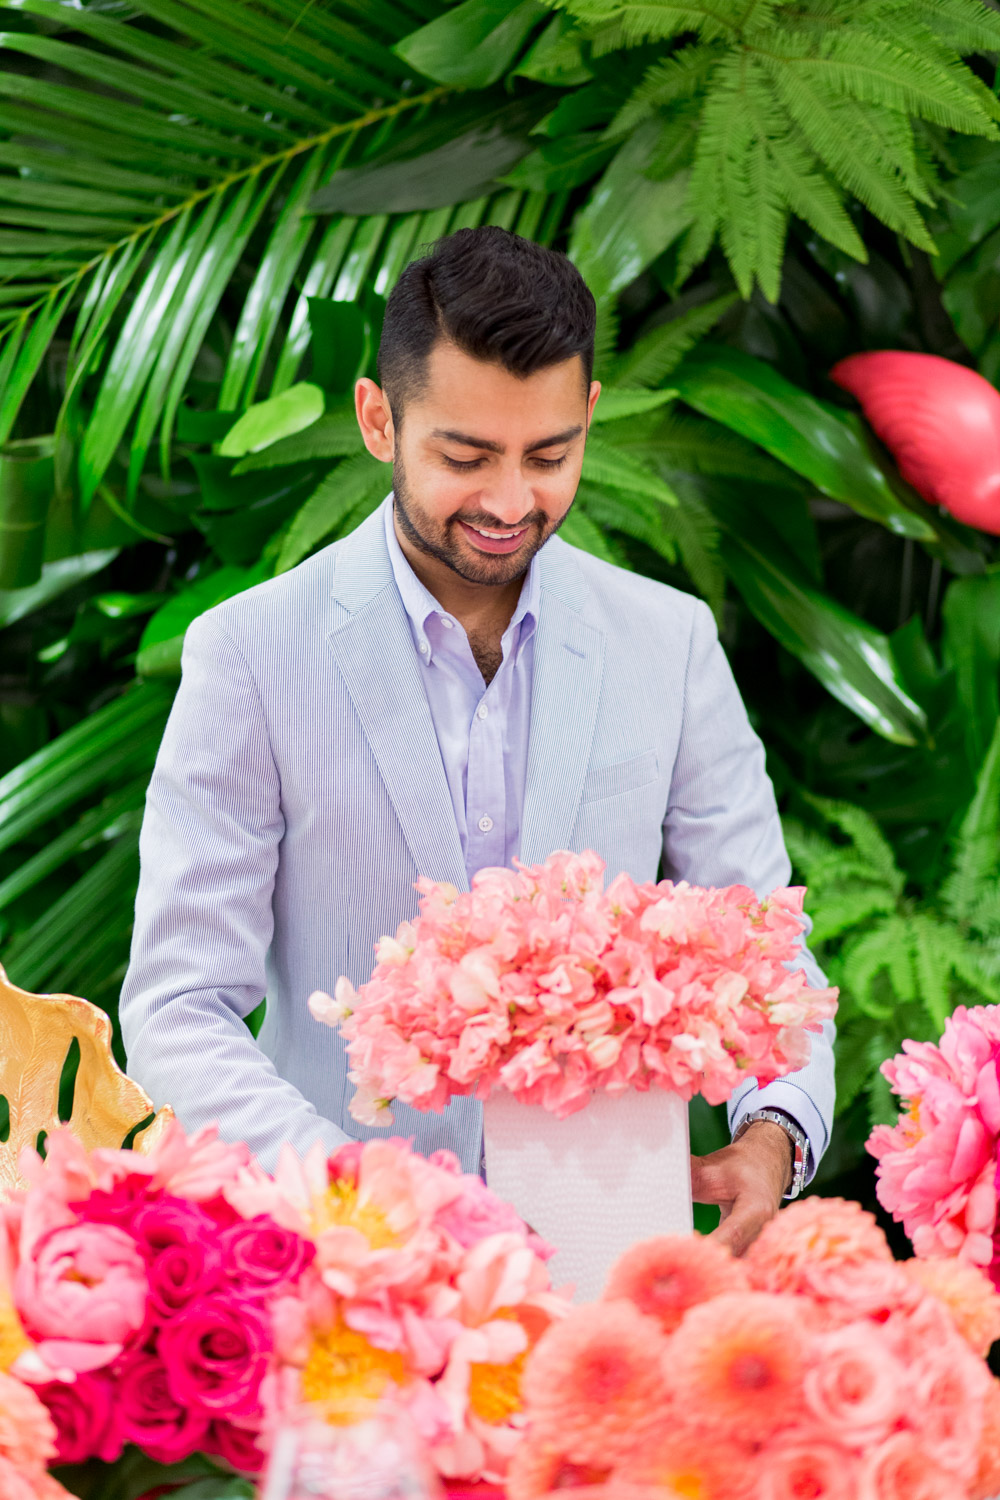 Fayaz from Bloom Box with pink floral arrangements in Orange County